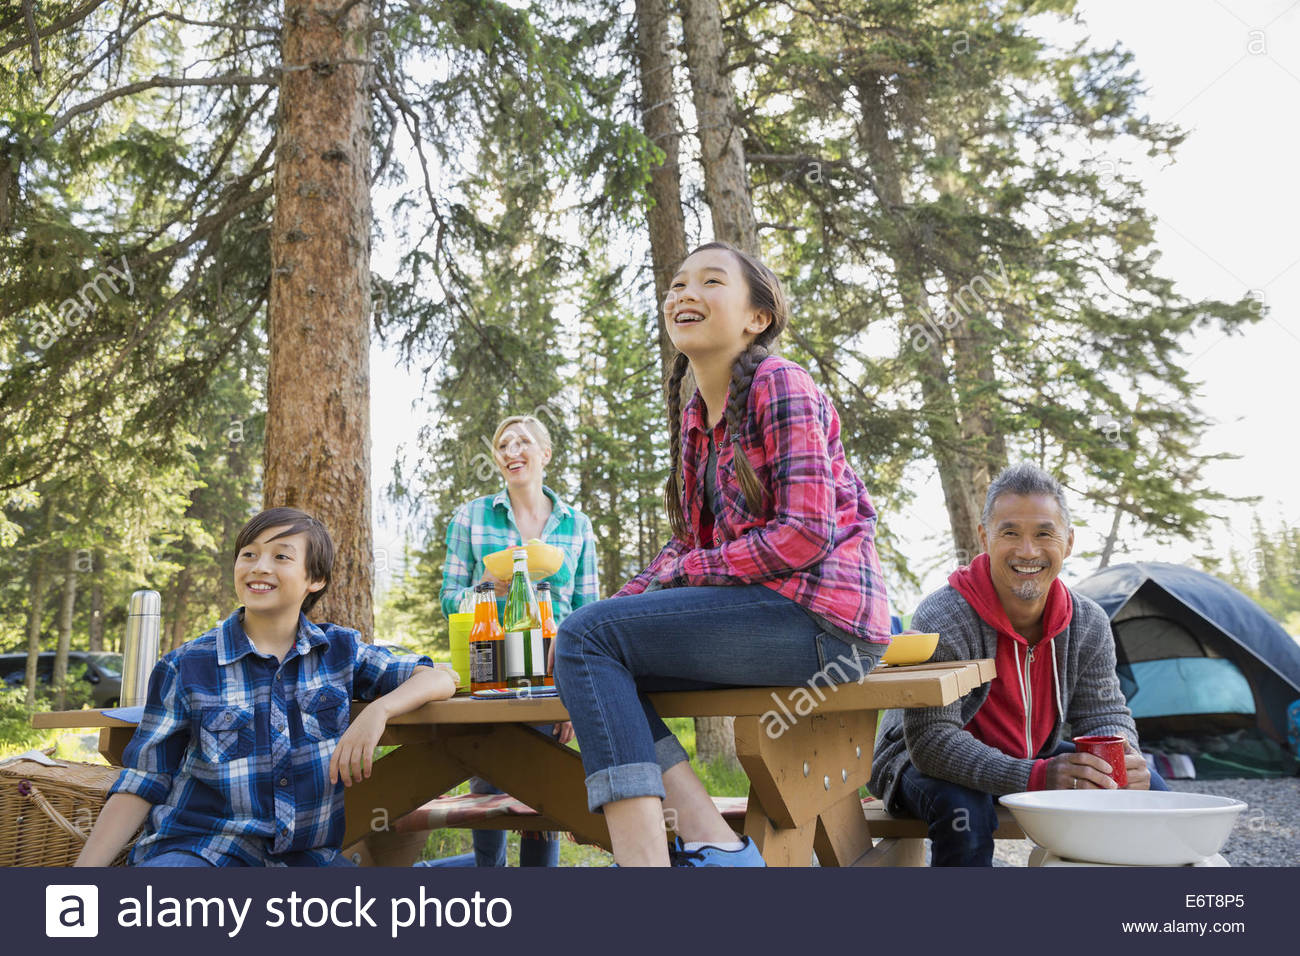 Family eating together at campsite - Stock Image